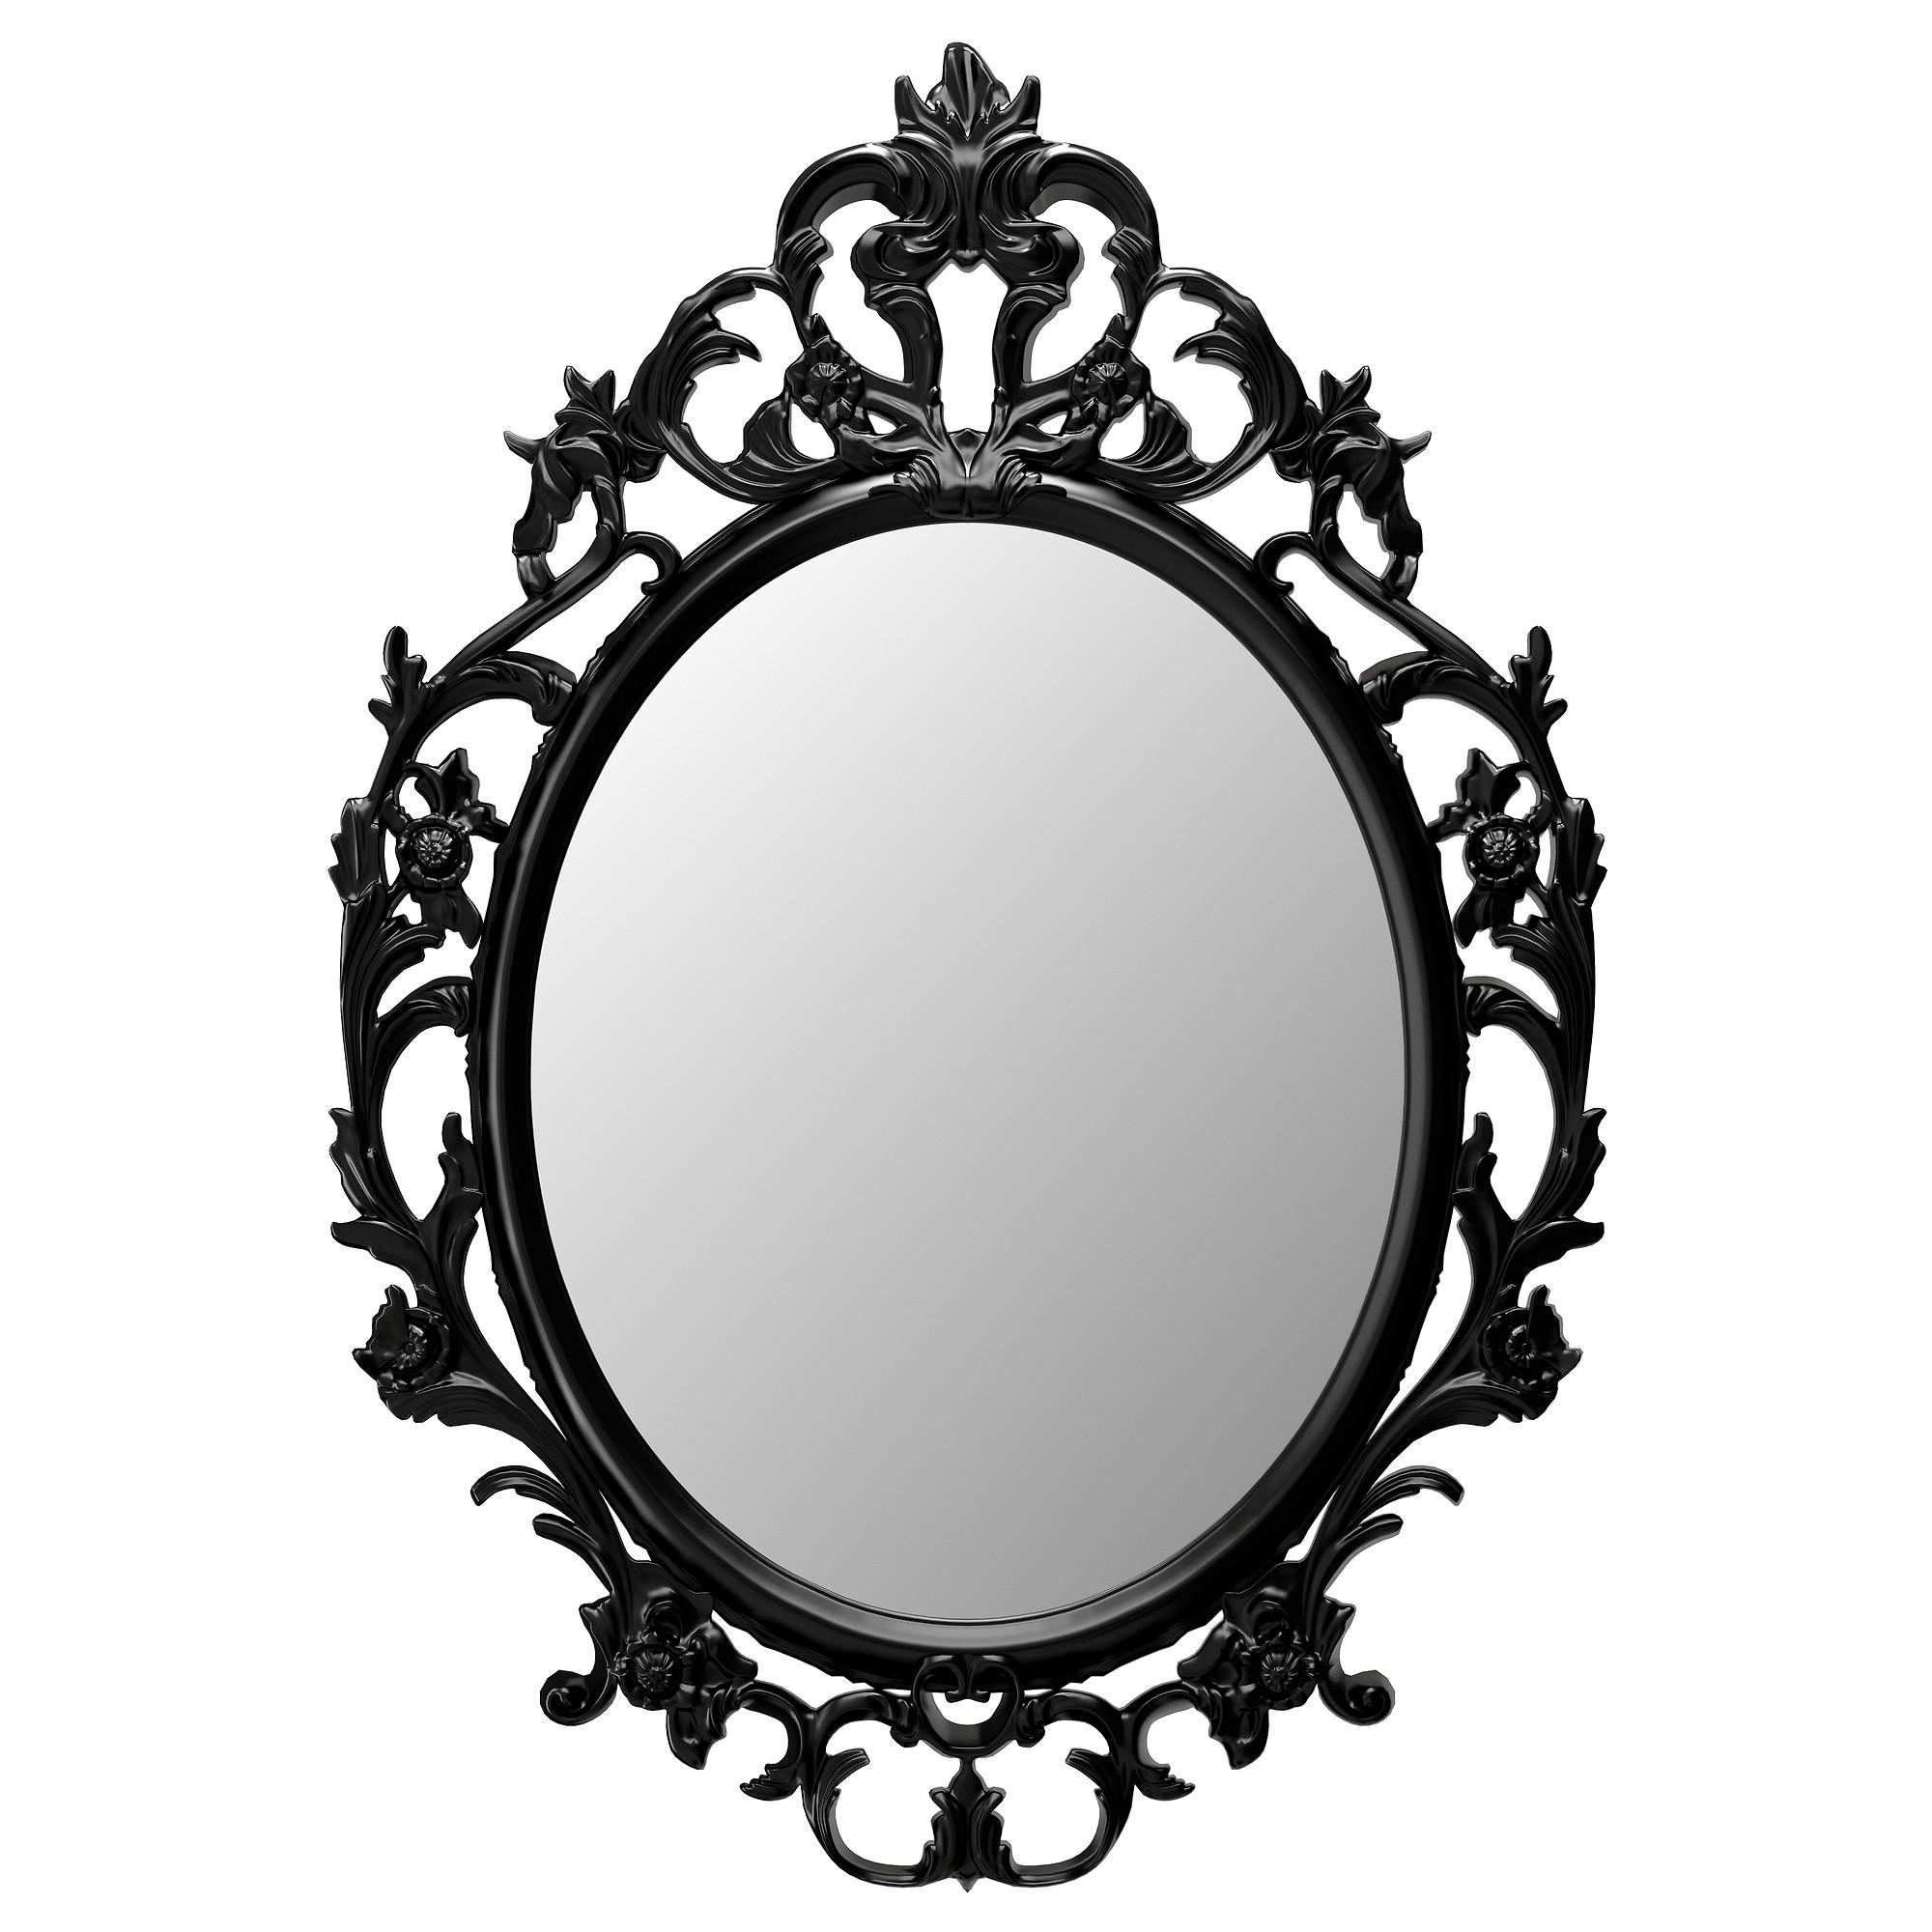 Ung Drill Mirror – Ikea Regarding Ornate Oval Mirrors (Image 19 of 20)